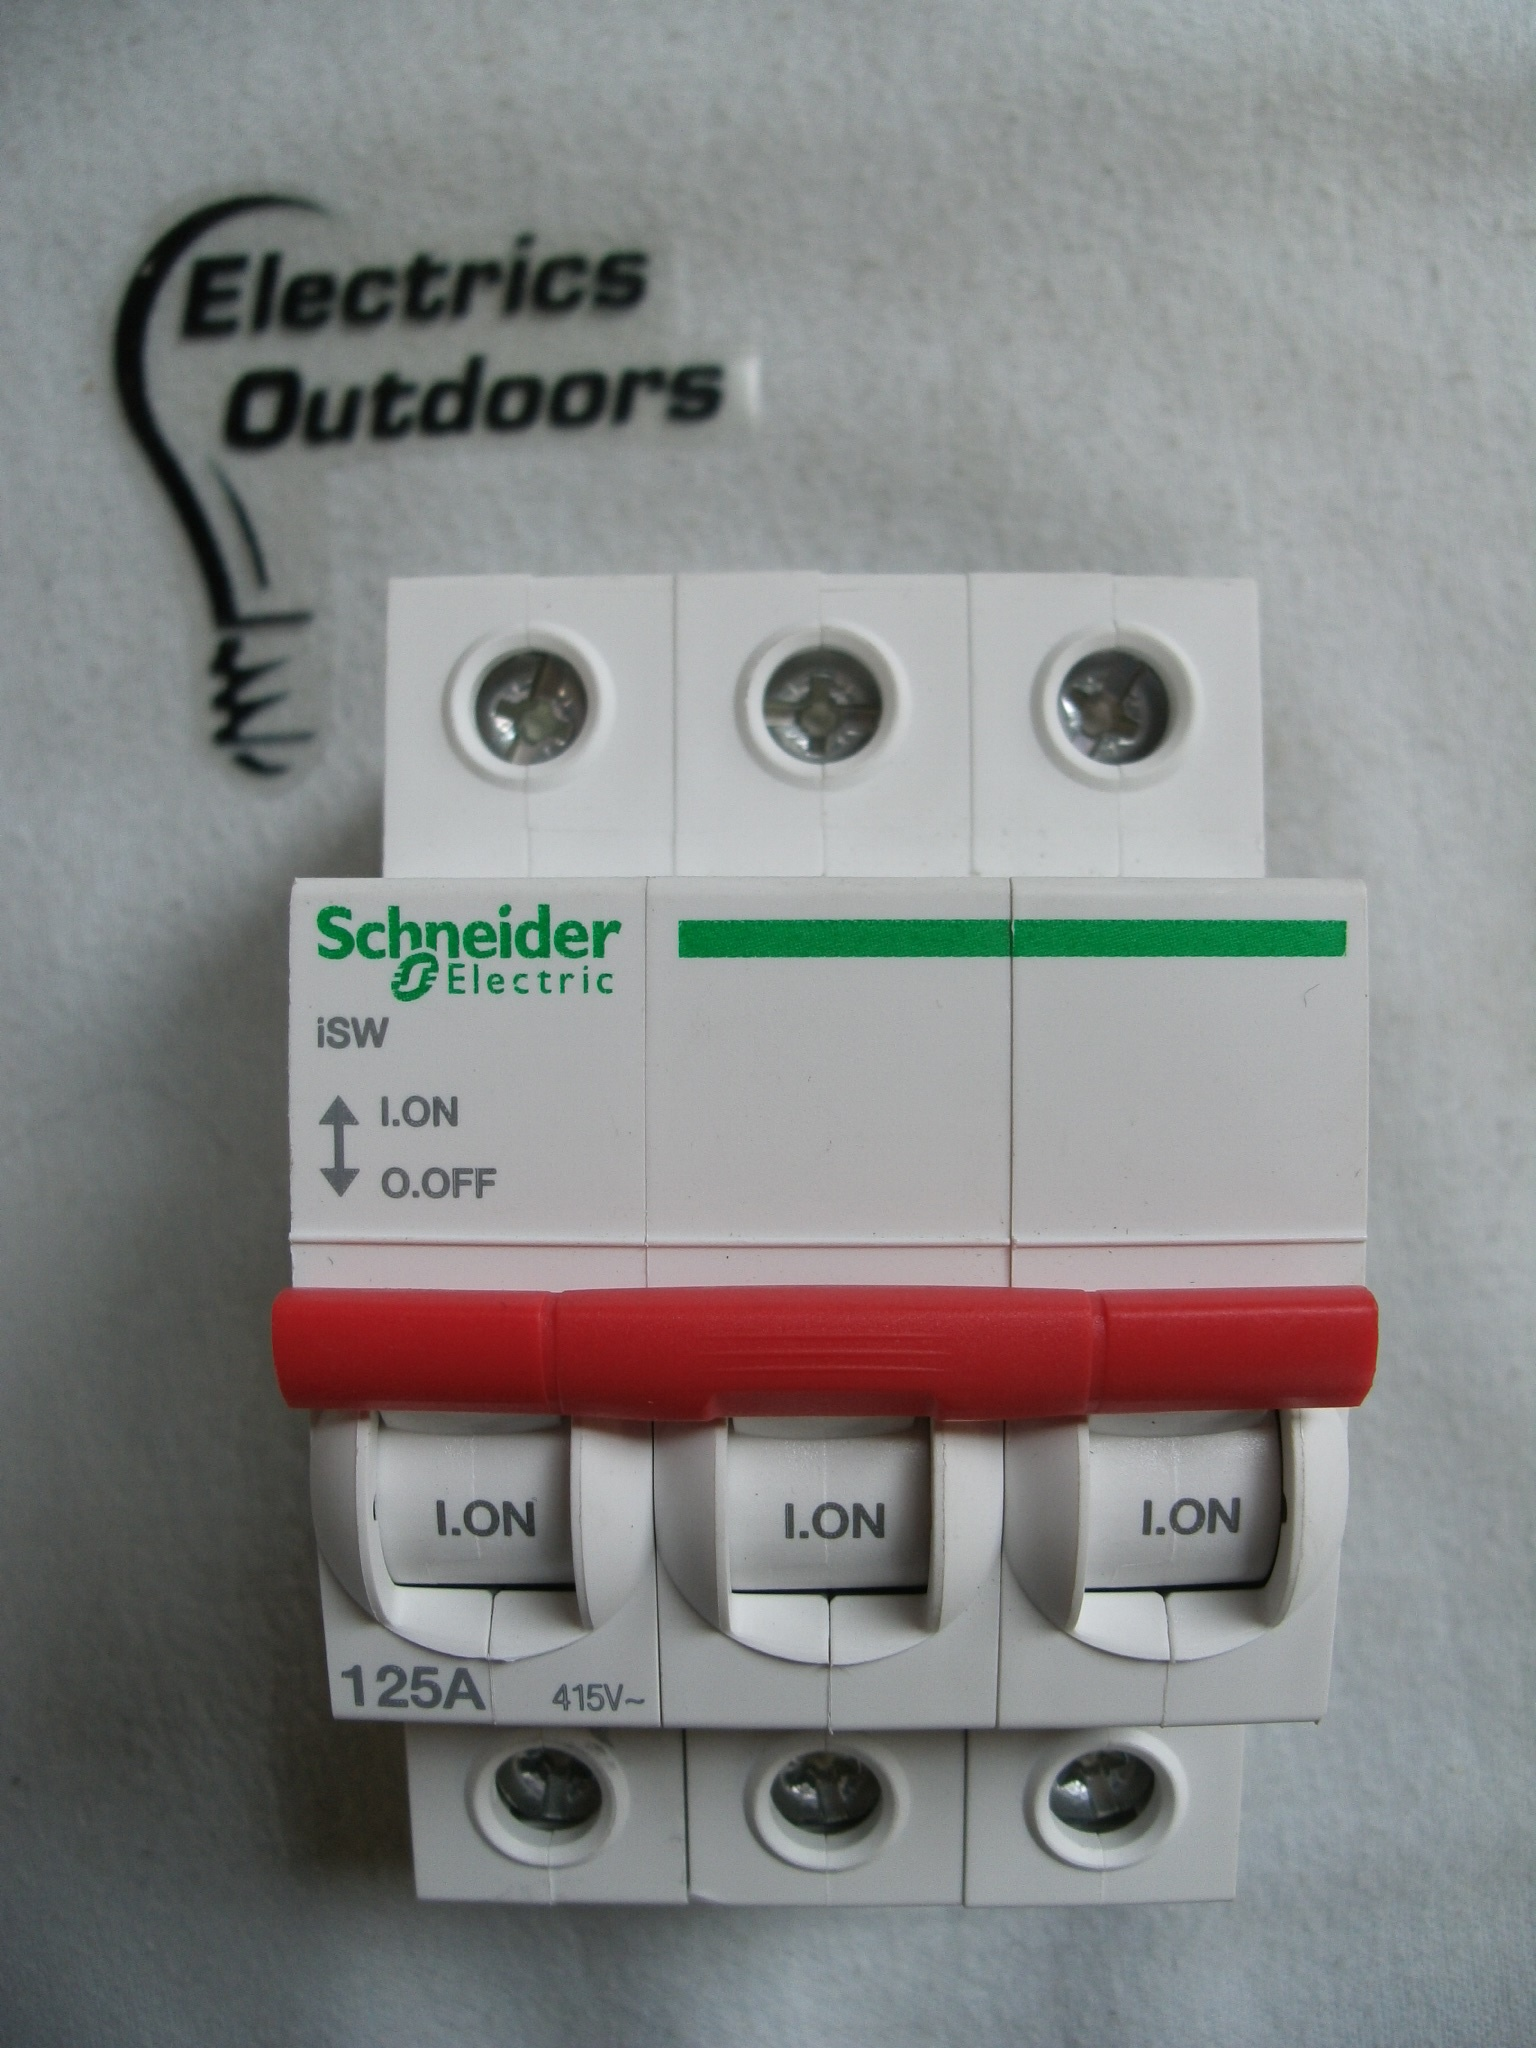 Wylex Fuse Box Bs Number Trusted Wiring Diagrams 125 Amp Schneider Electric Main Switch Disconnector 415v Isw En Wiley X Prescription Sunglasses